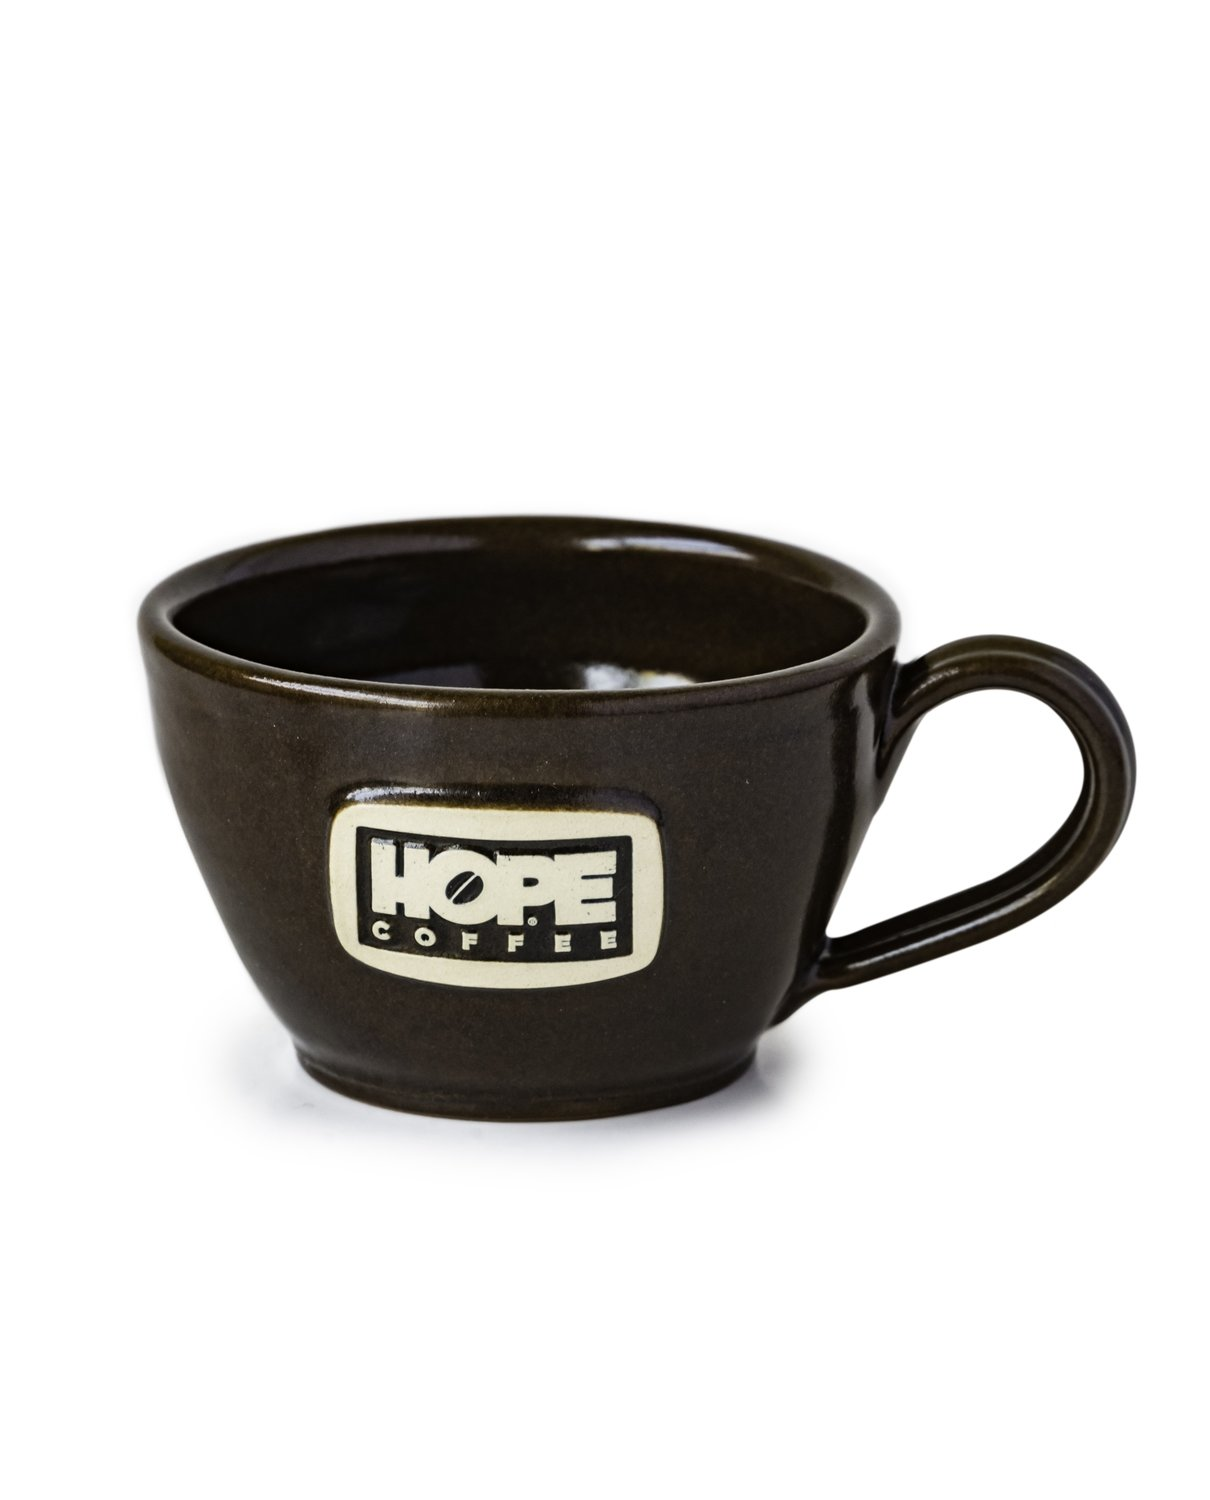 HOPE Coffee 5 oz Handcrafted Stoneware Double Shot Espresso Cup